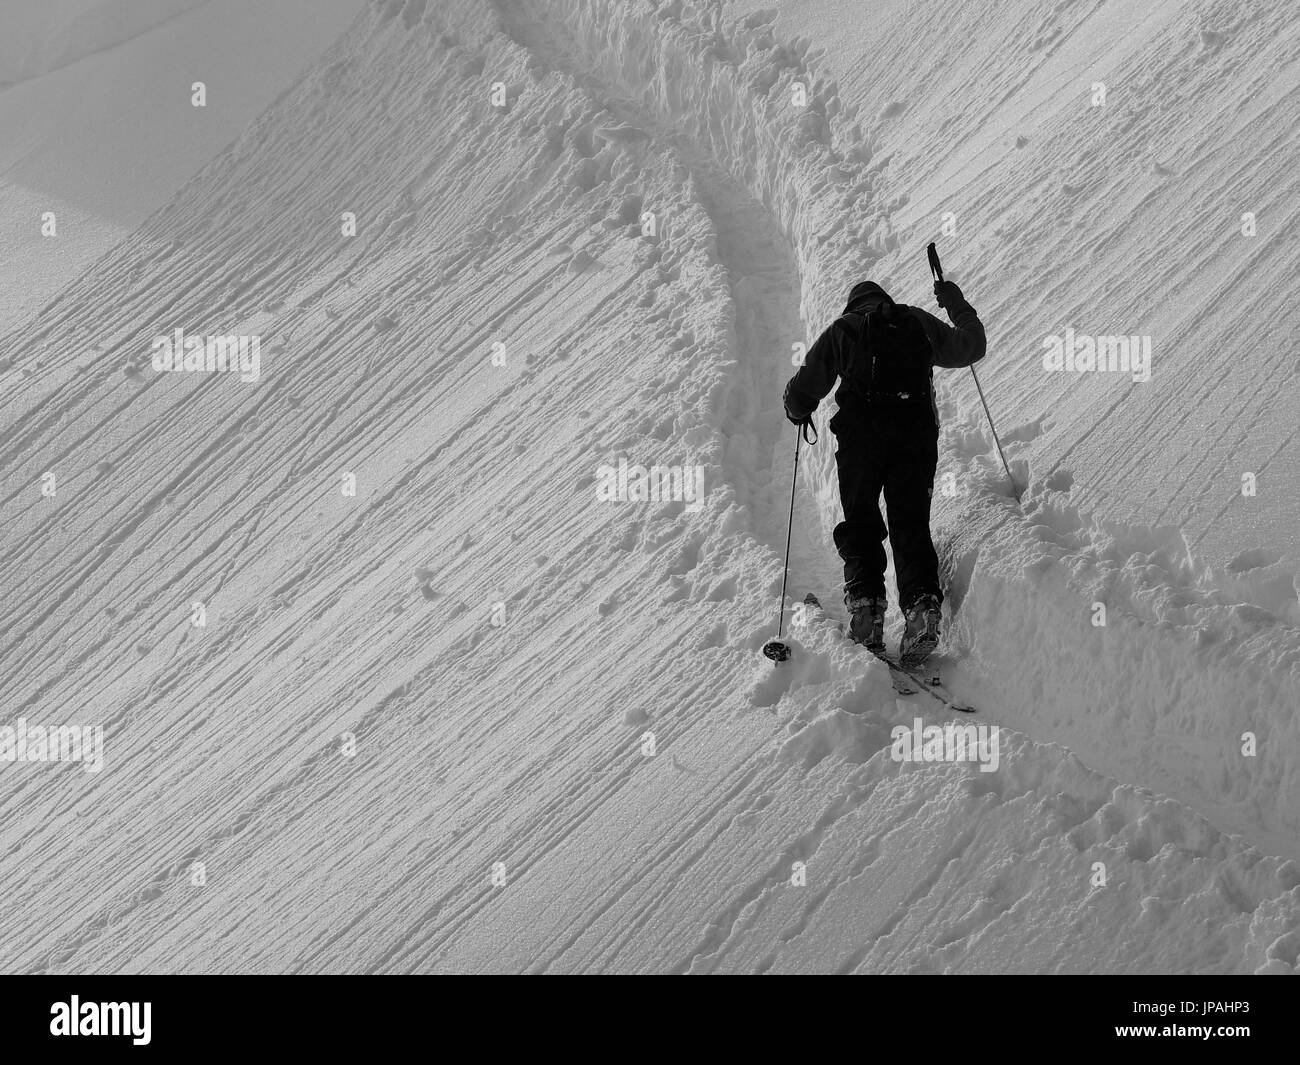 Skier on the way to the summit of the Lacherspitze - Stock Image